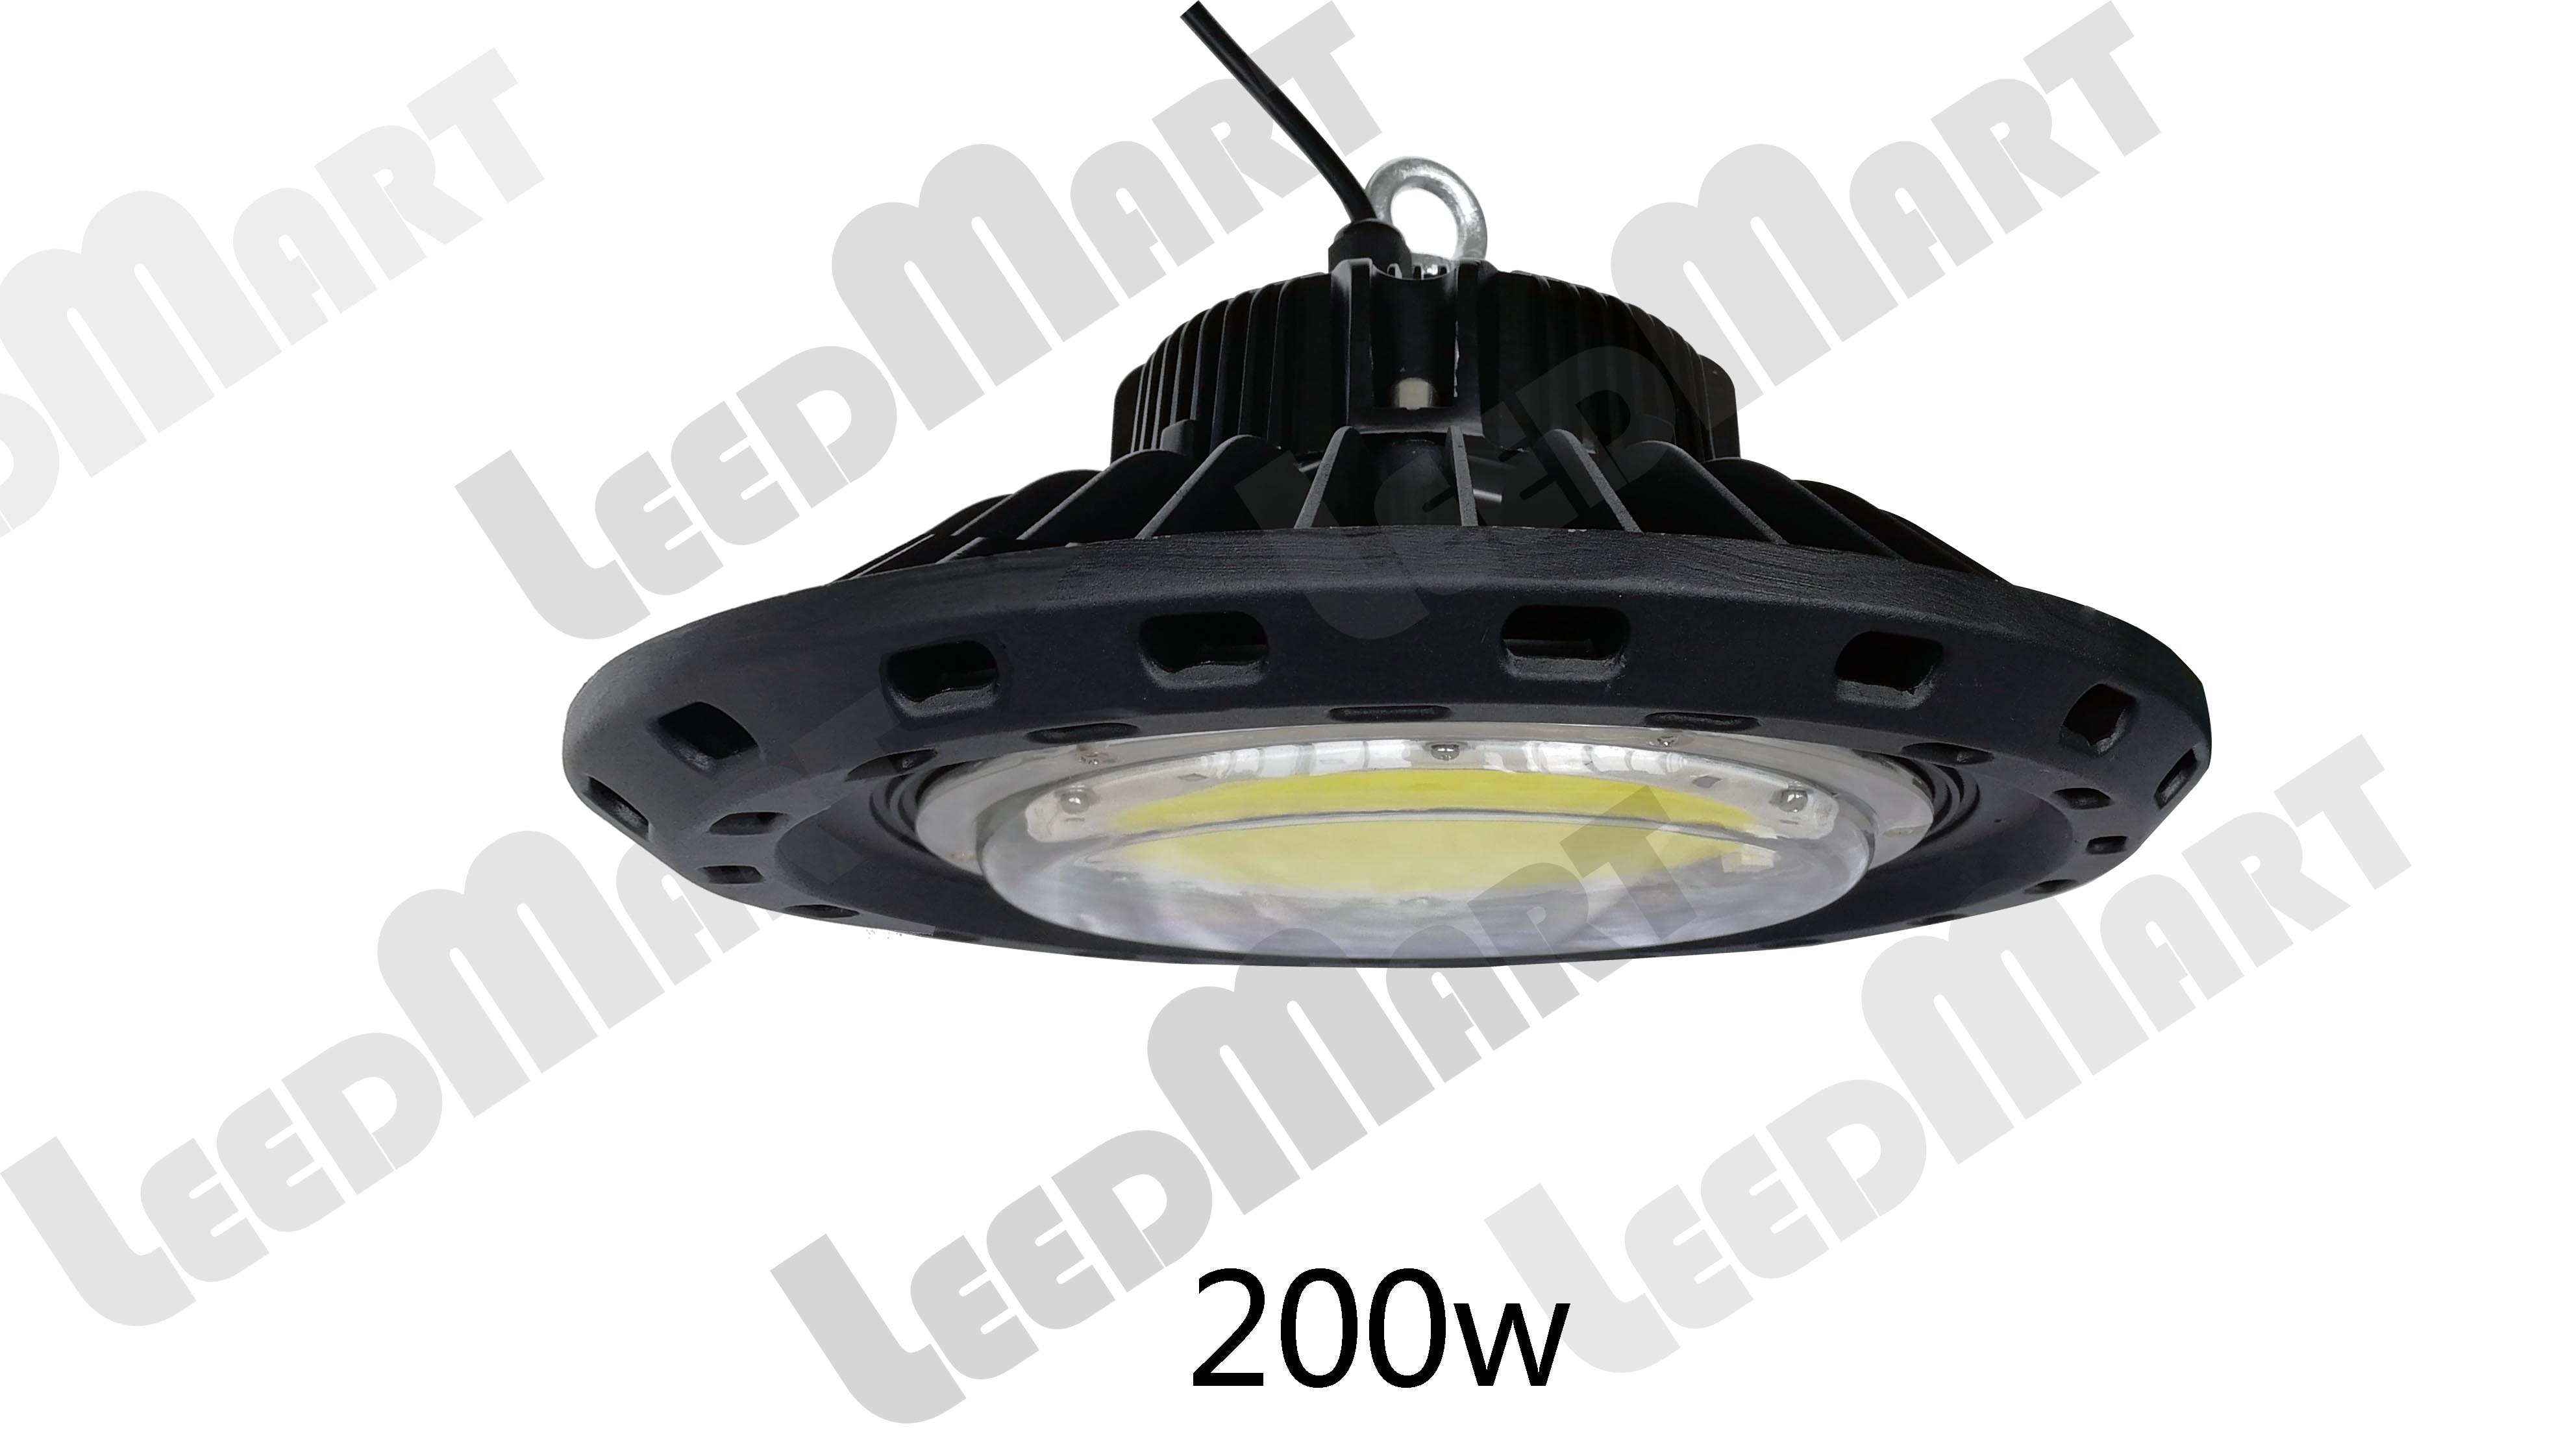 UFO 100w-250w LED high bay light IP65 indoor outdoor commercial warehouse lighting top quality